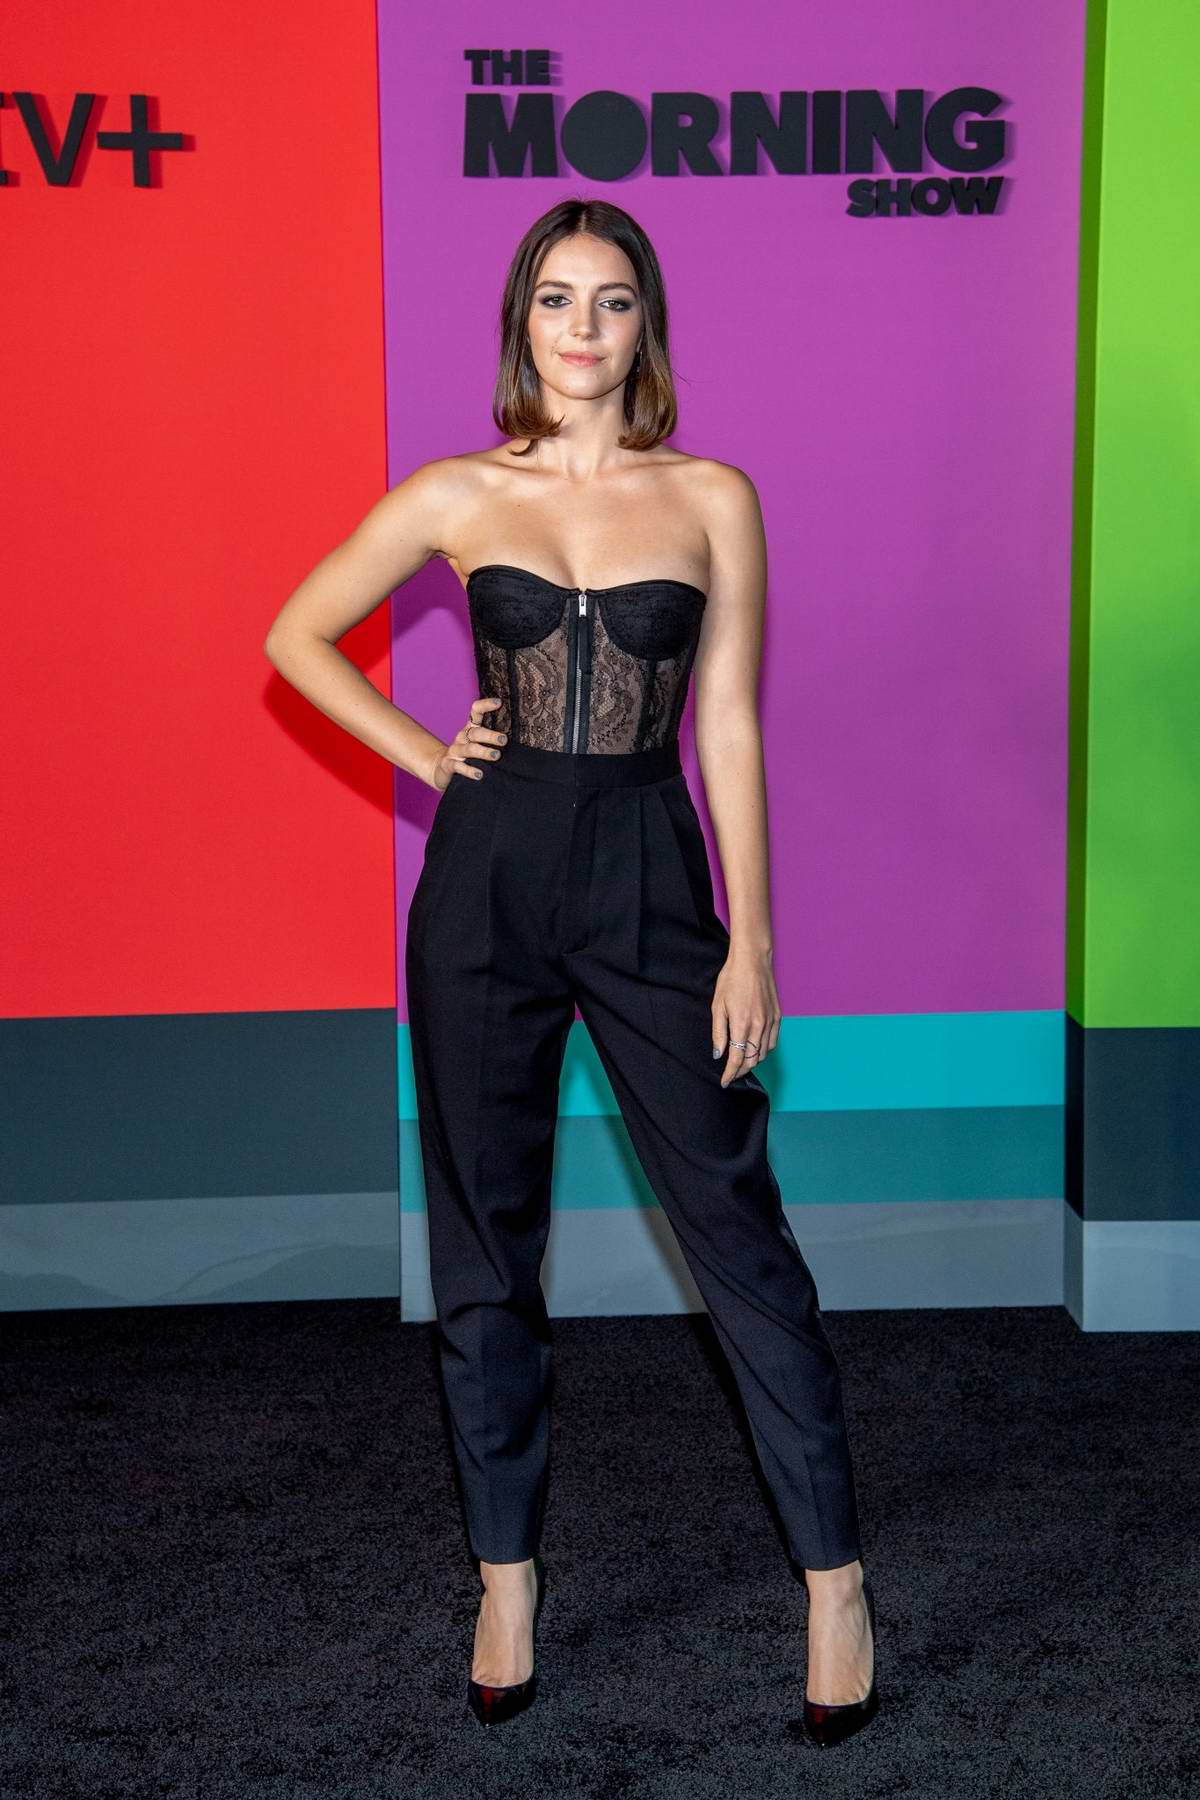 Ella Hunt attends the Premiere of Apple TV+'s 'The Morning Show' at Lincoln Center in New York City